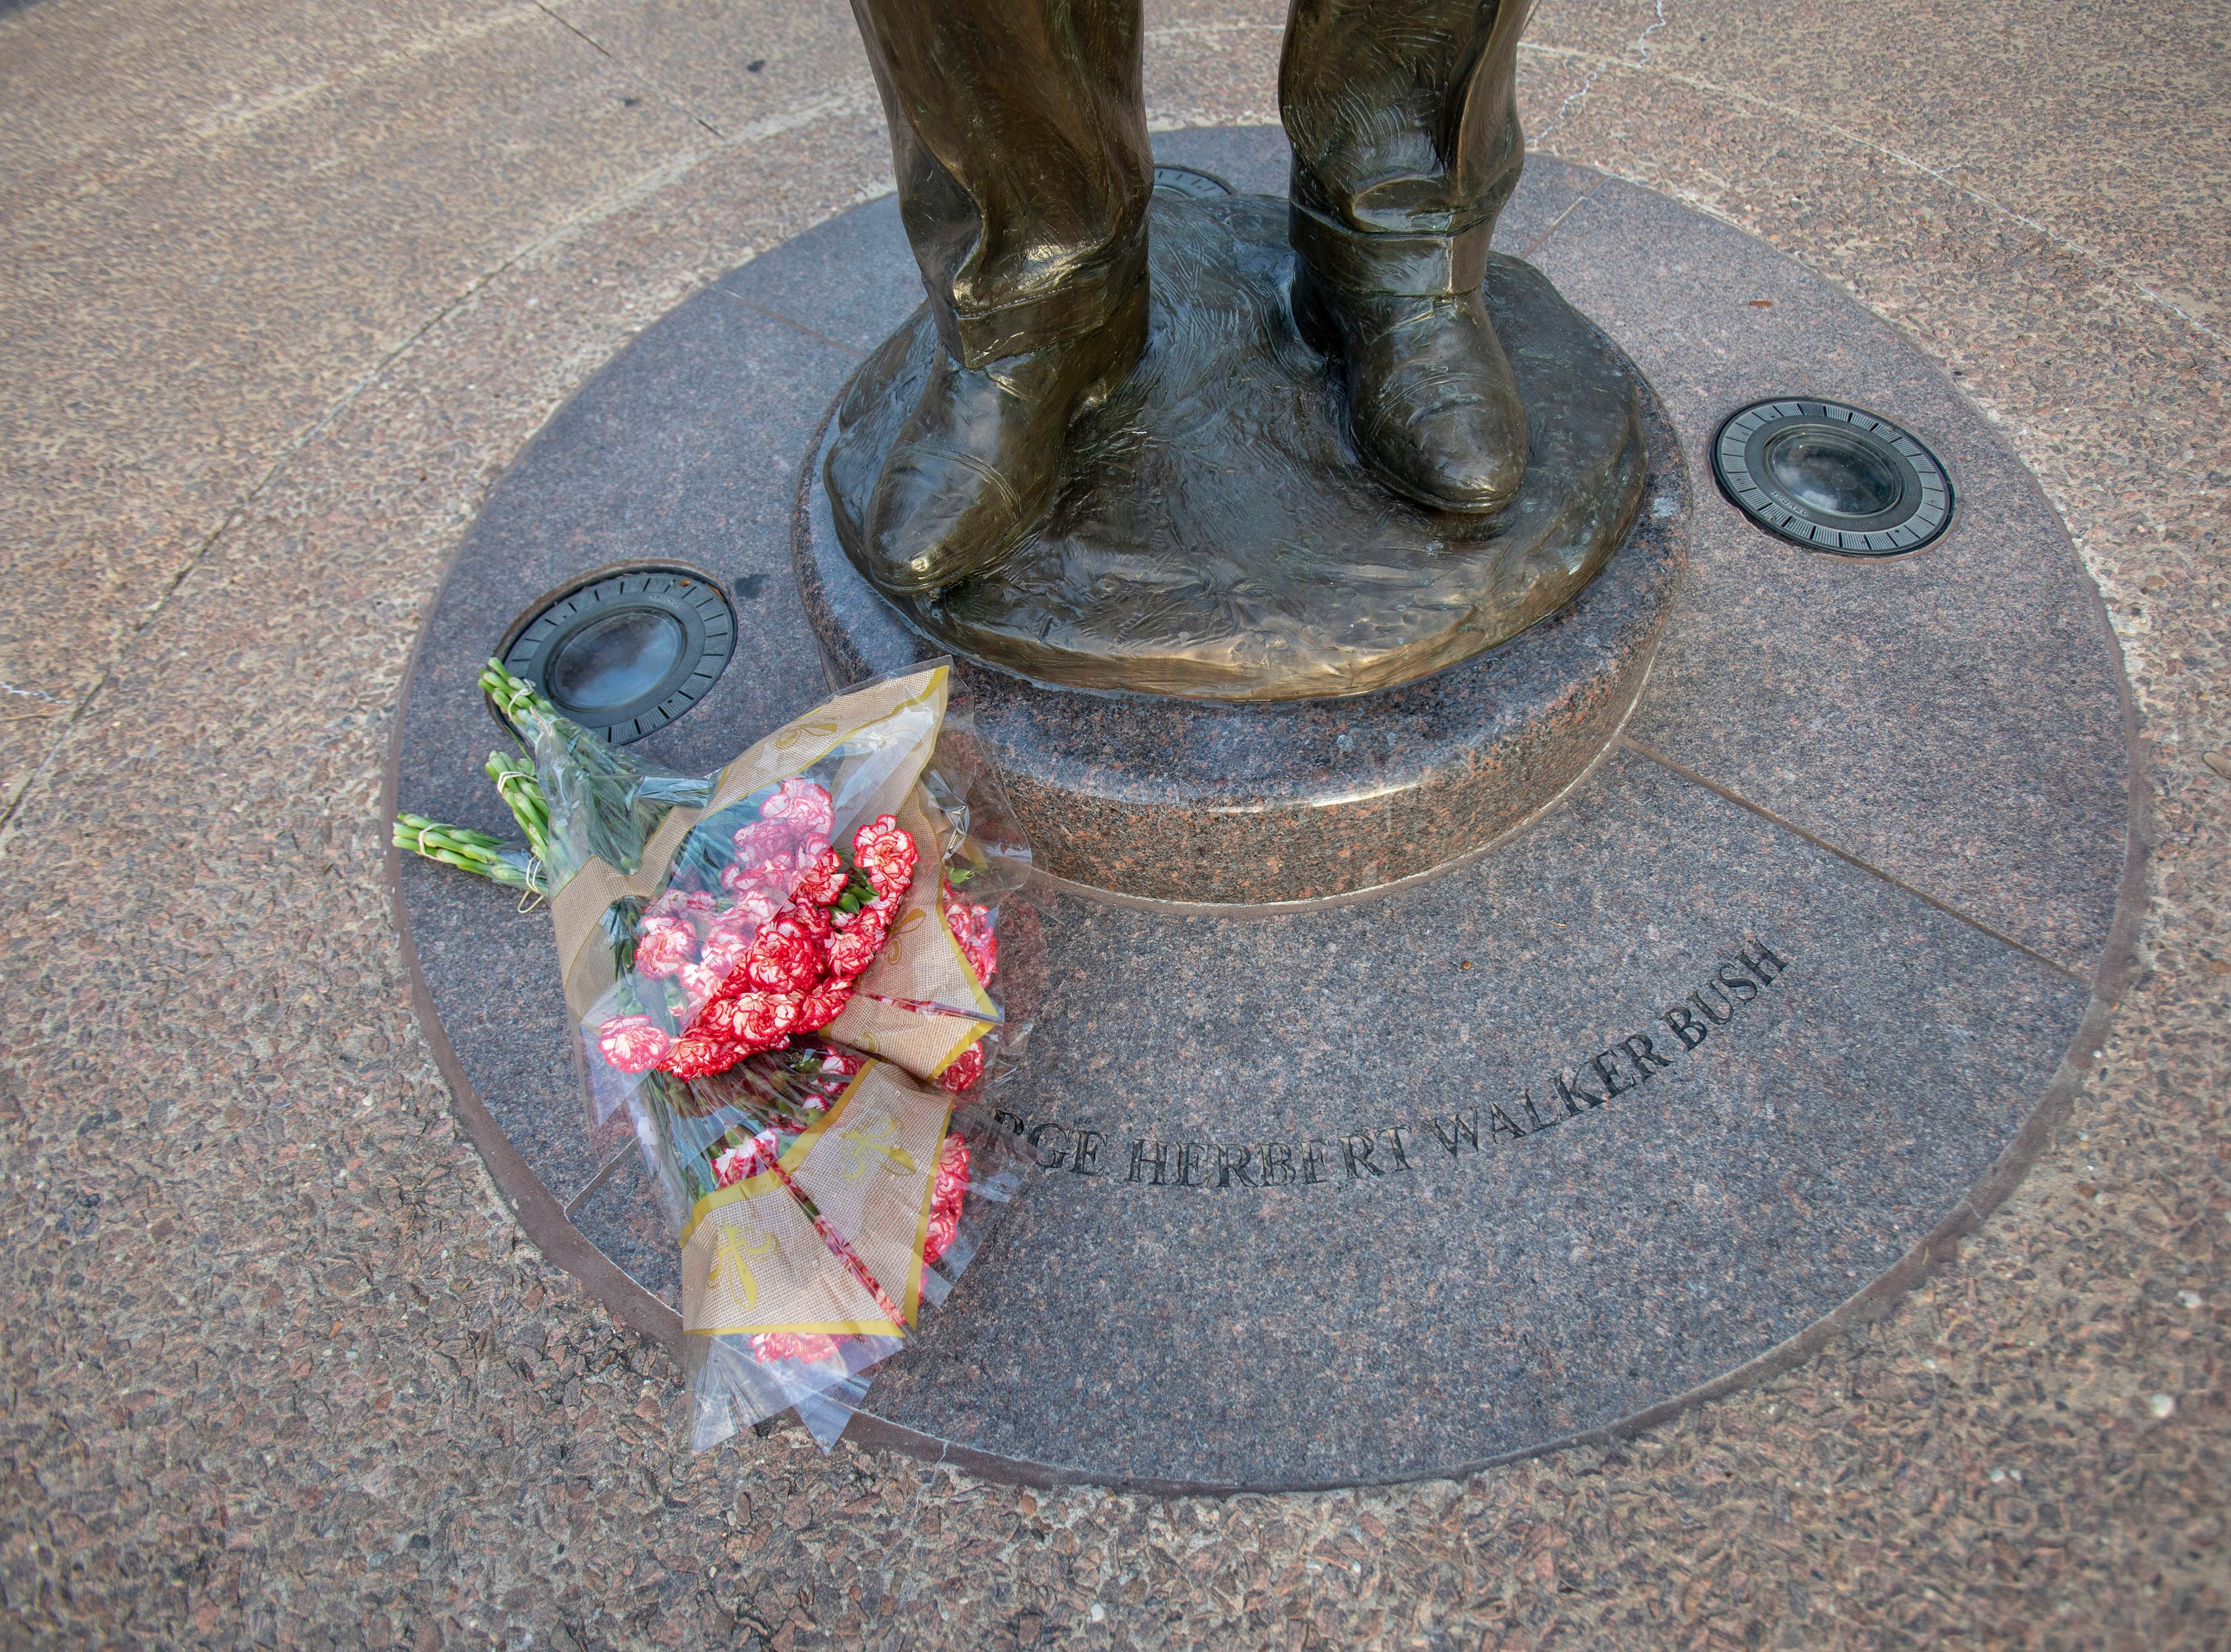 Flowers lay at the statue of former United States President George H.W. Bush near the Presidential Library in College Station, Texas on Dec. 1, 2018.